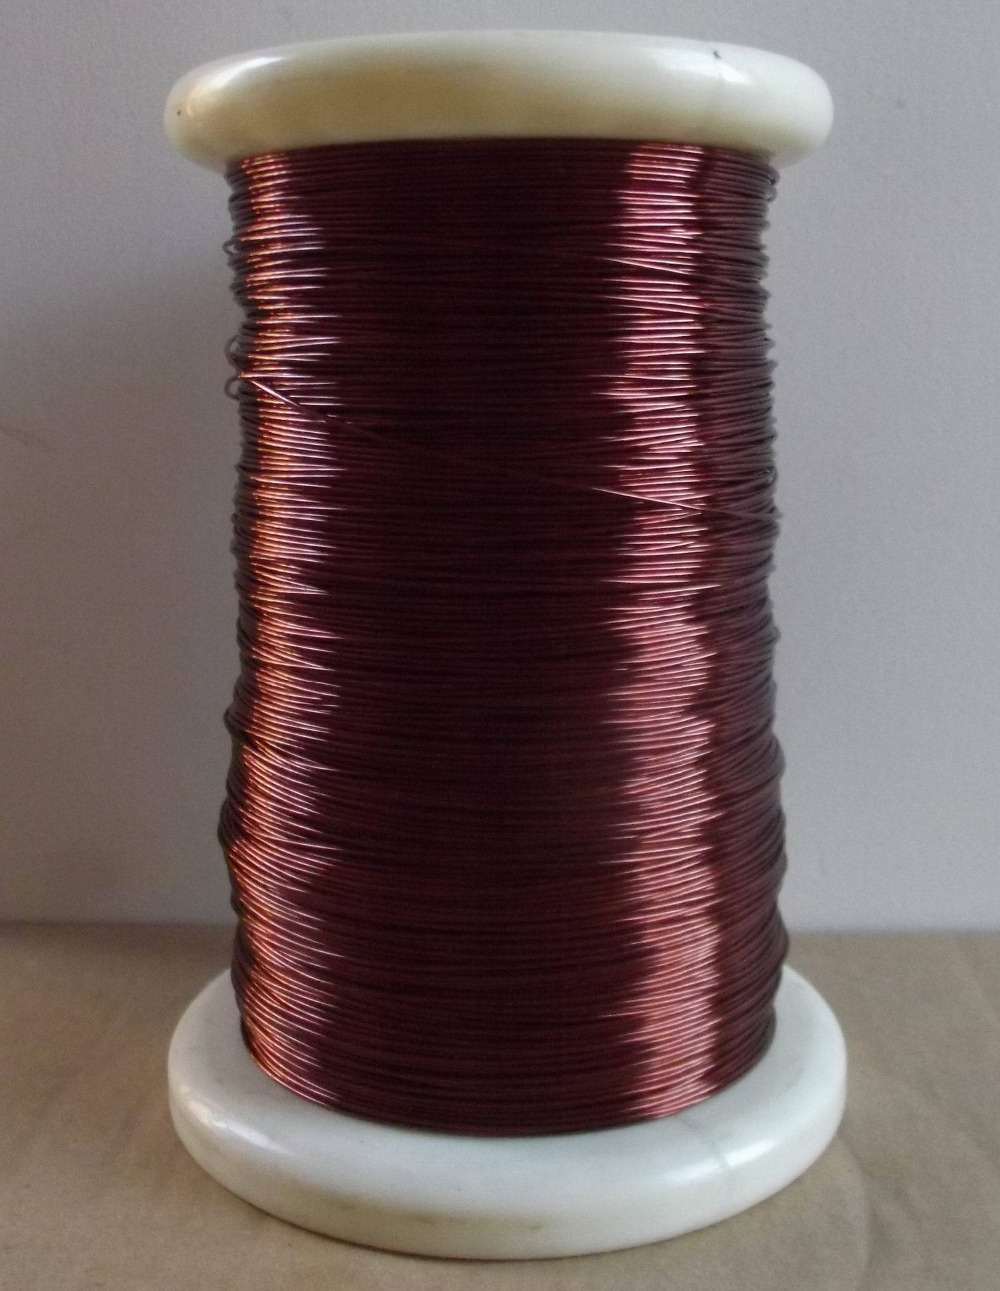 1mm Magnet Wire Enameled Copper wire Magnetic Coil Winding all sizes in stock